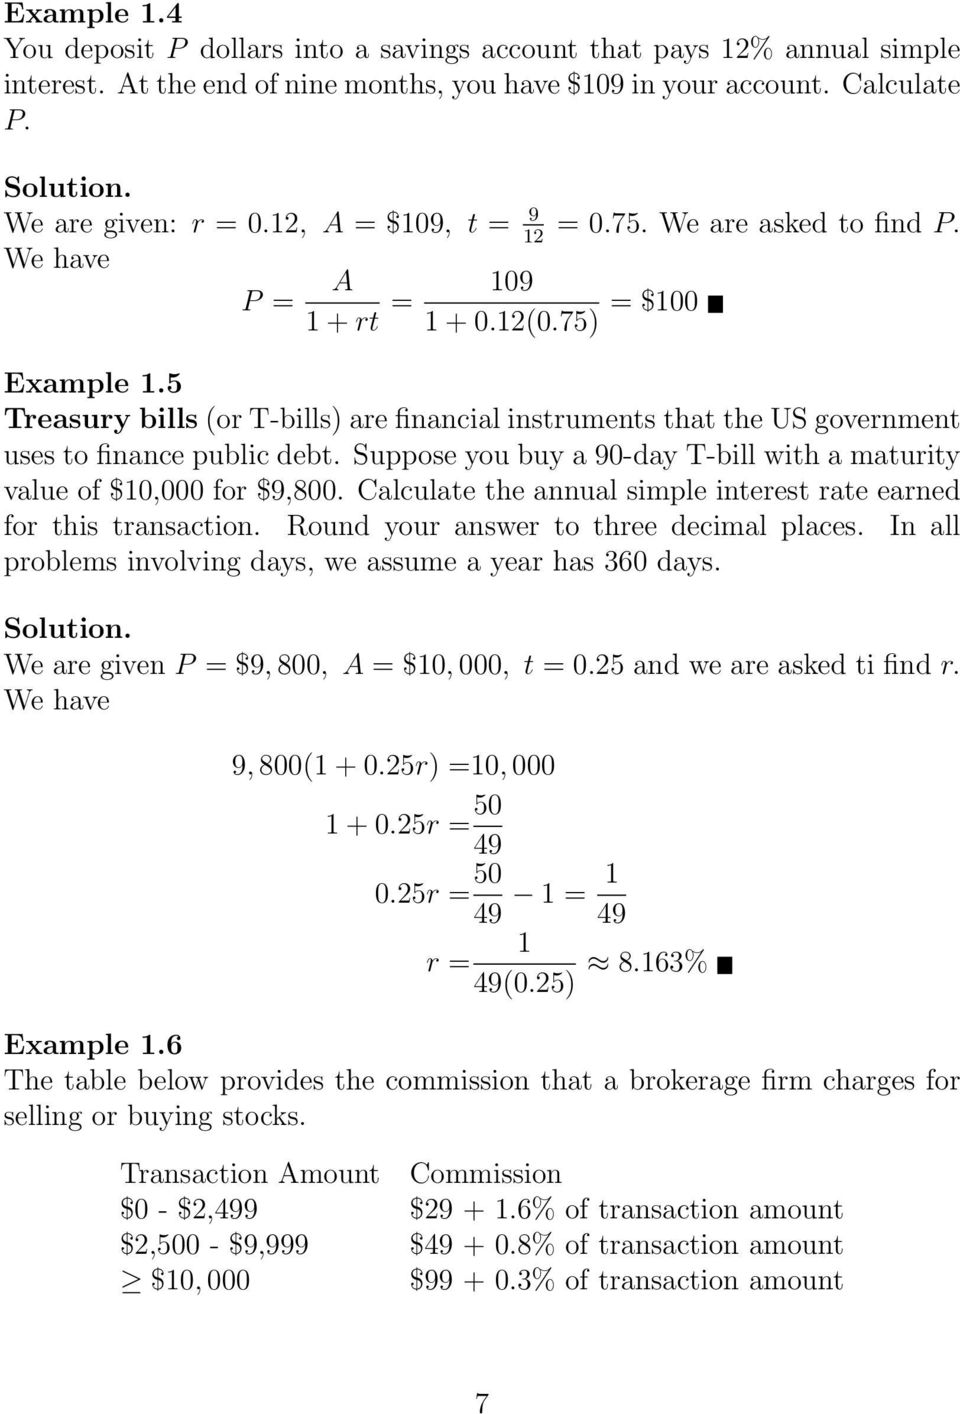 5 Treasury bills (or T-bills) are financial instruments that the US government uses to finance public debt. Suppose you buy a 90-day T-bill with a maturity value of $10,000 for $9,800.